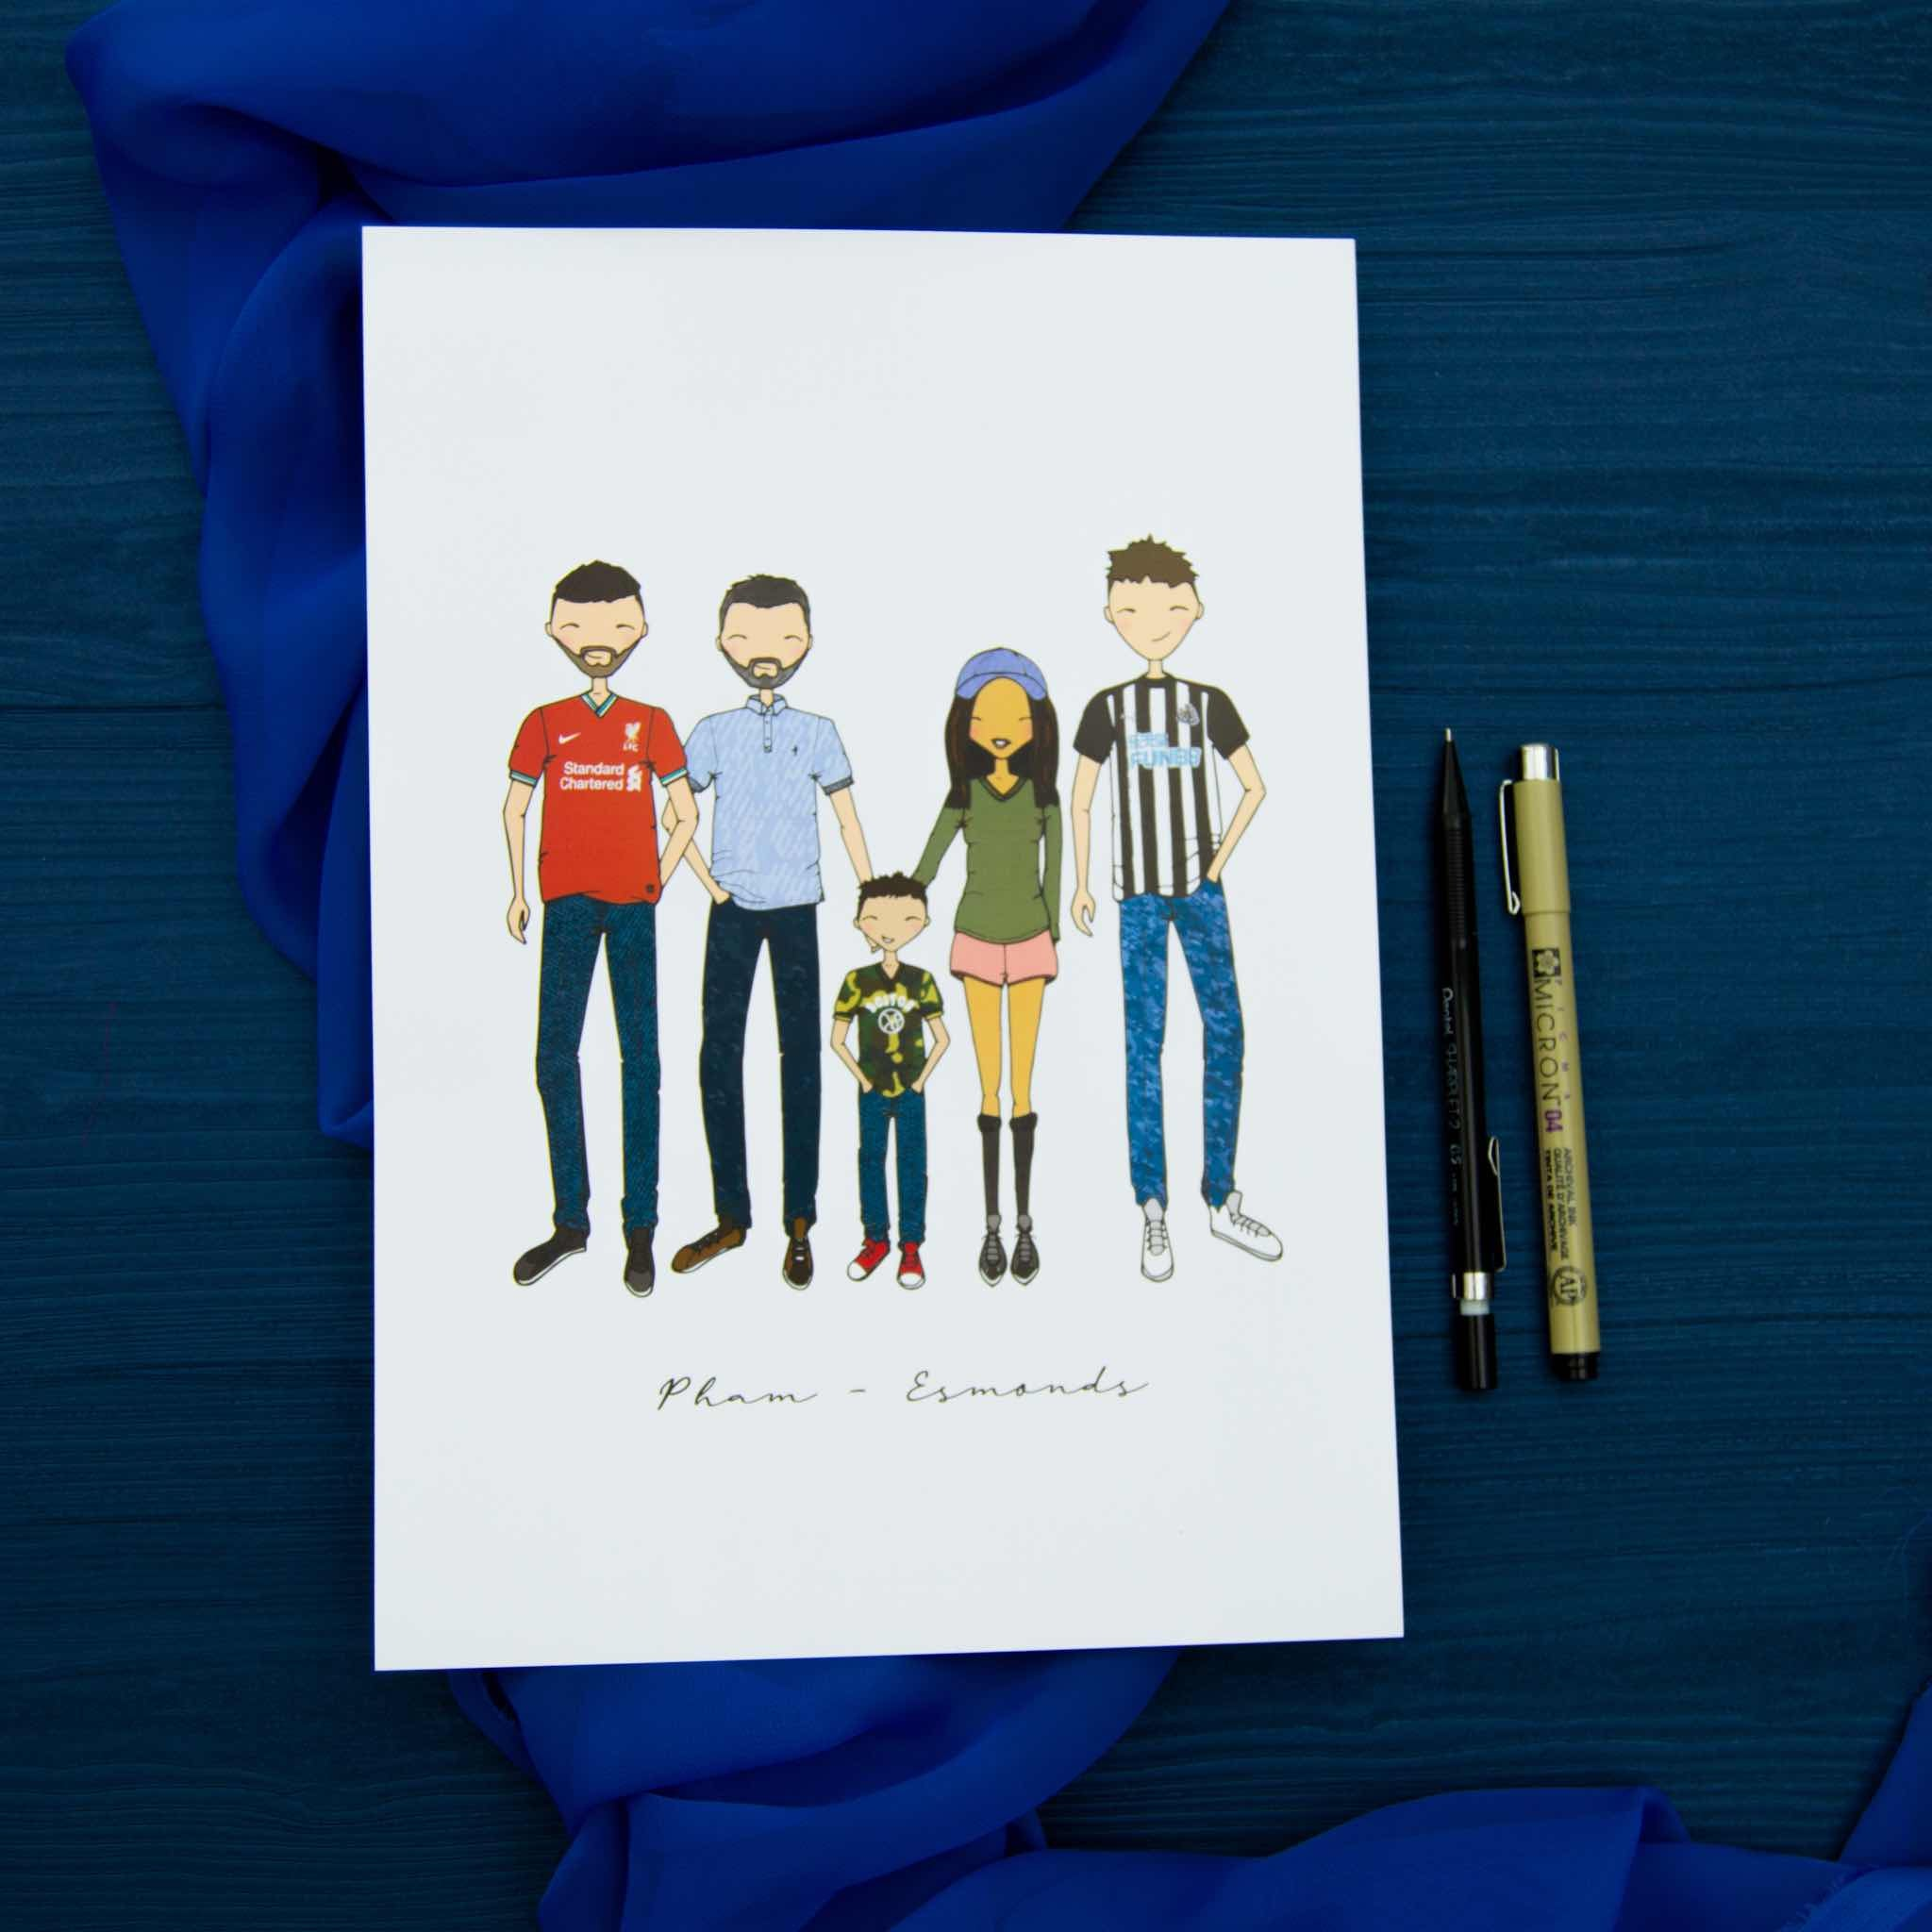 Cartoon drawing of family in colour on white paper, against blue background, with pens to the side.